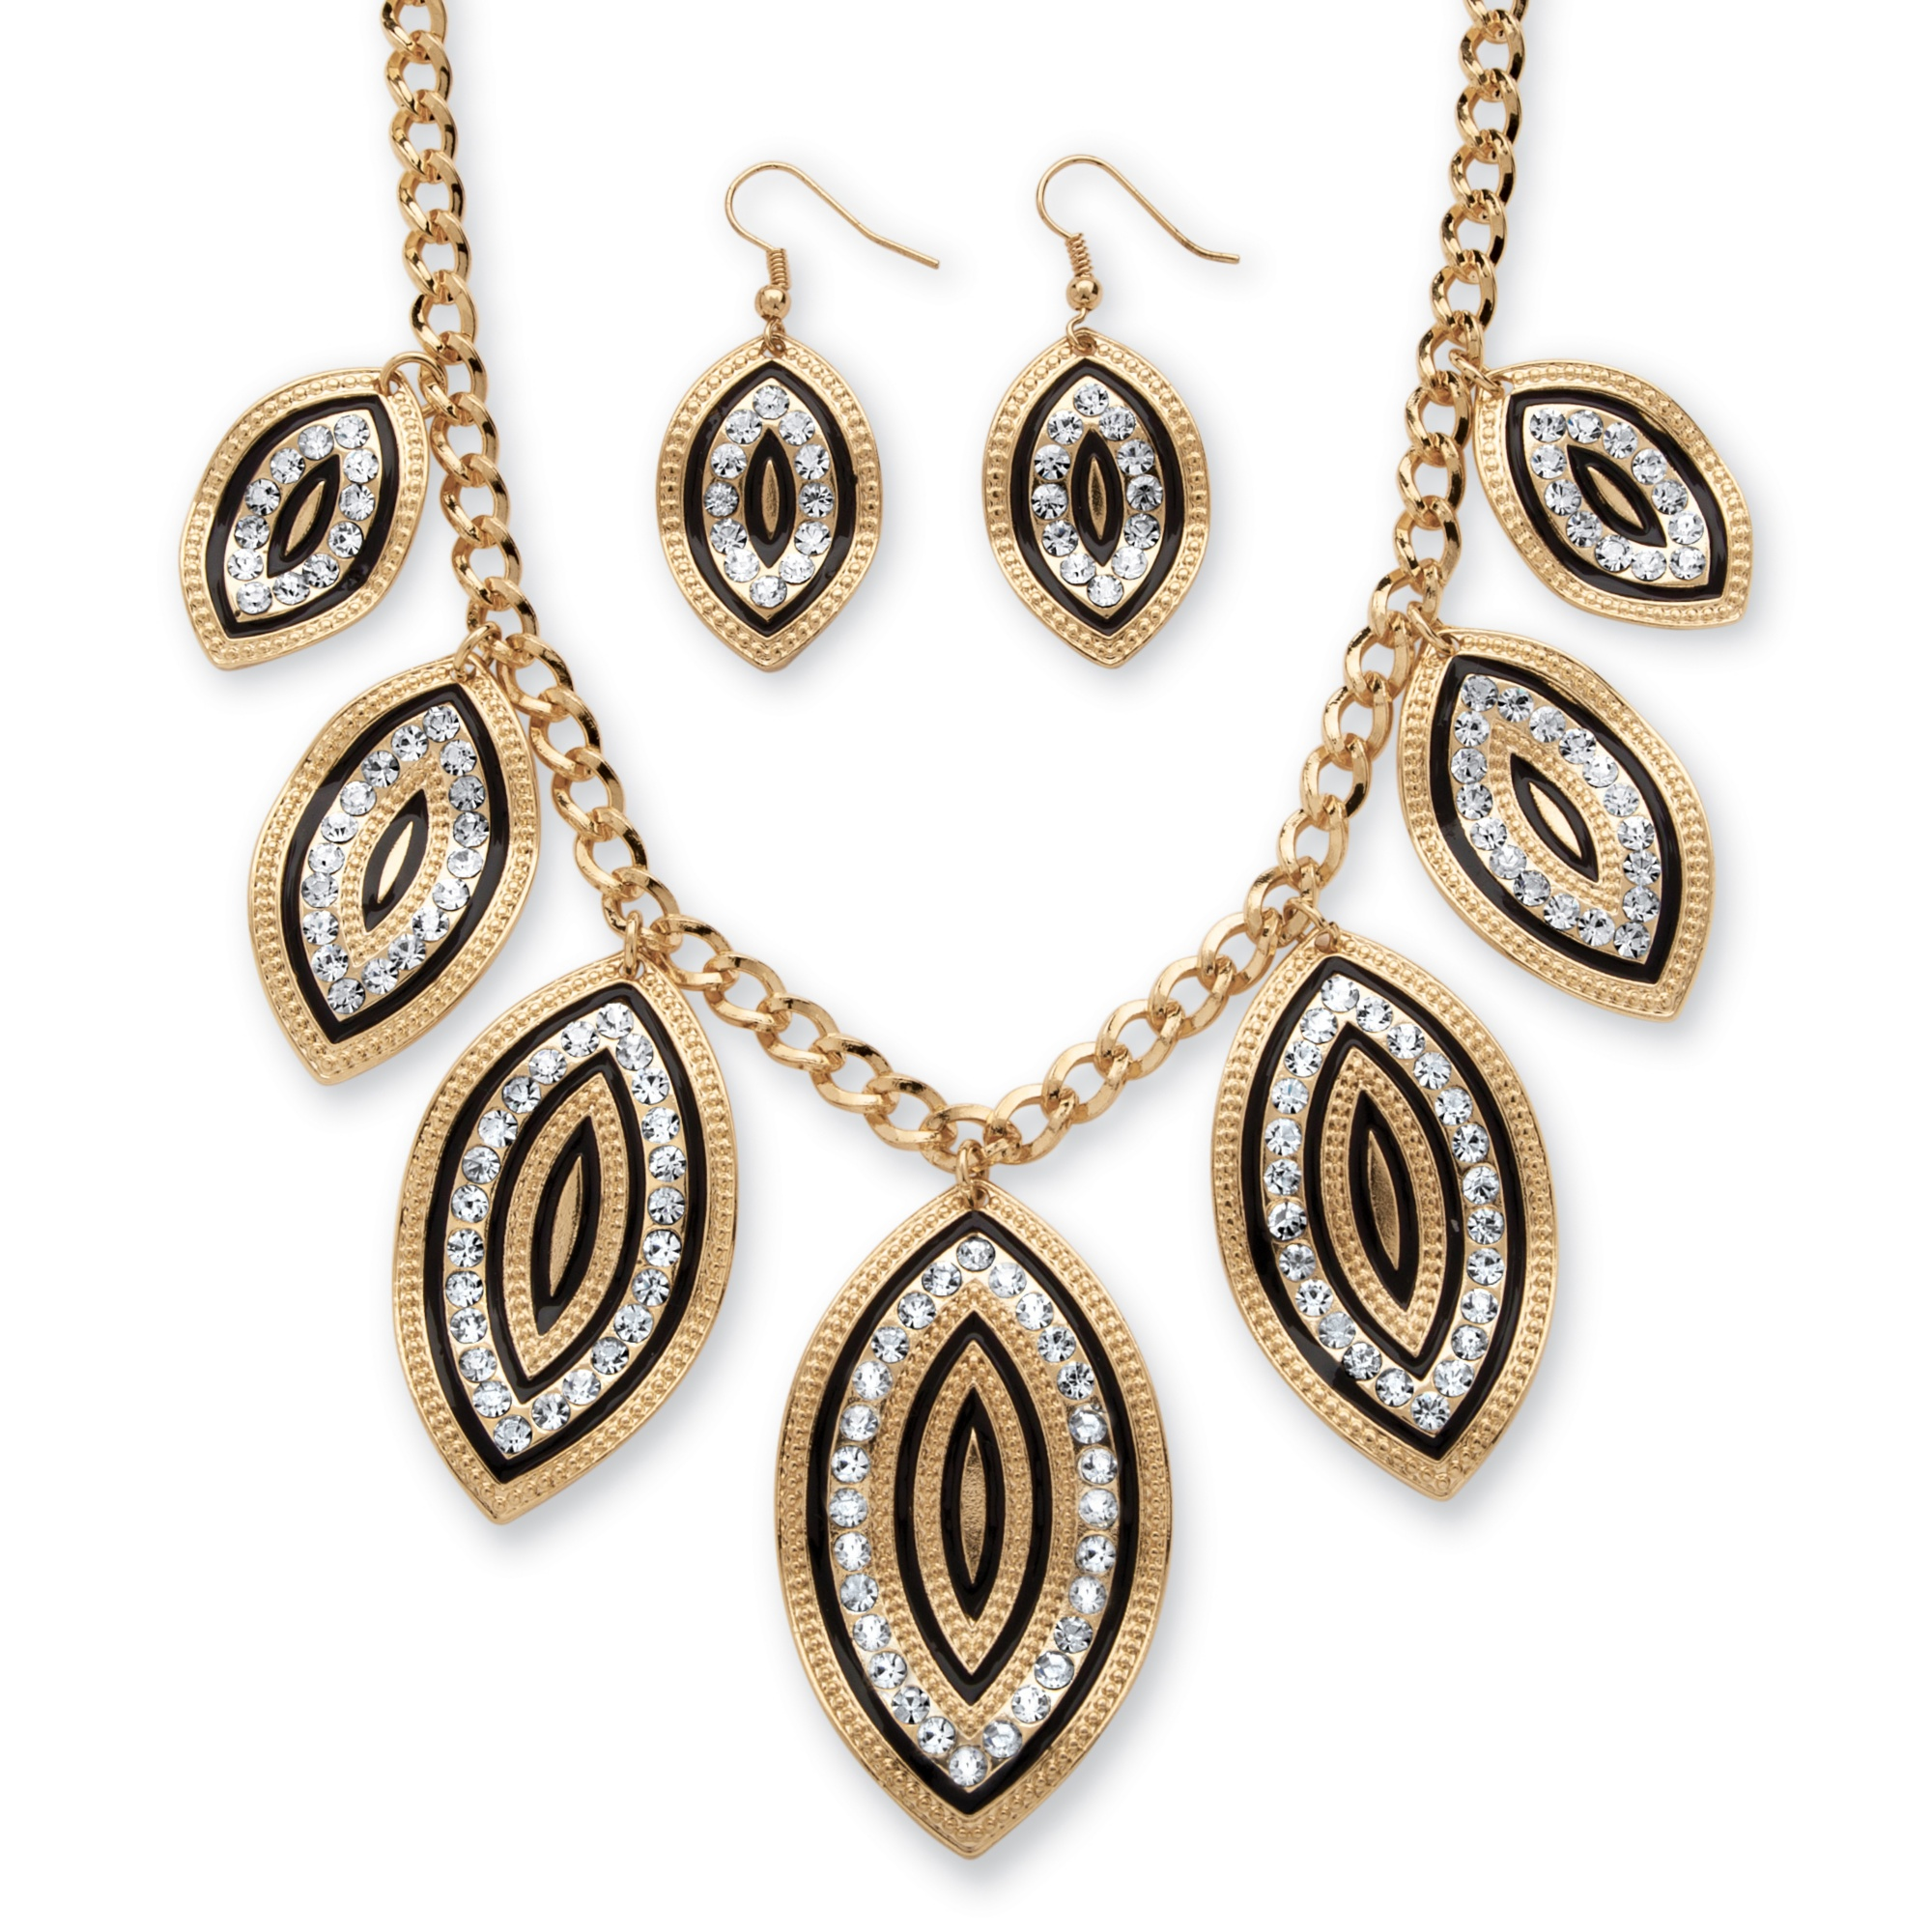 Crystal and Black Enamel Leaf Motif Necklace and Earrings Set in Gold Tone